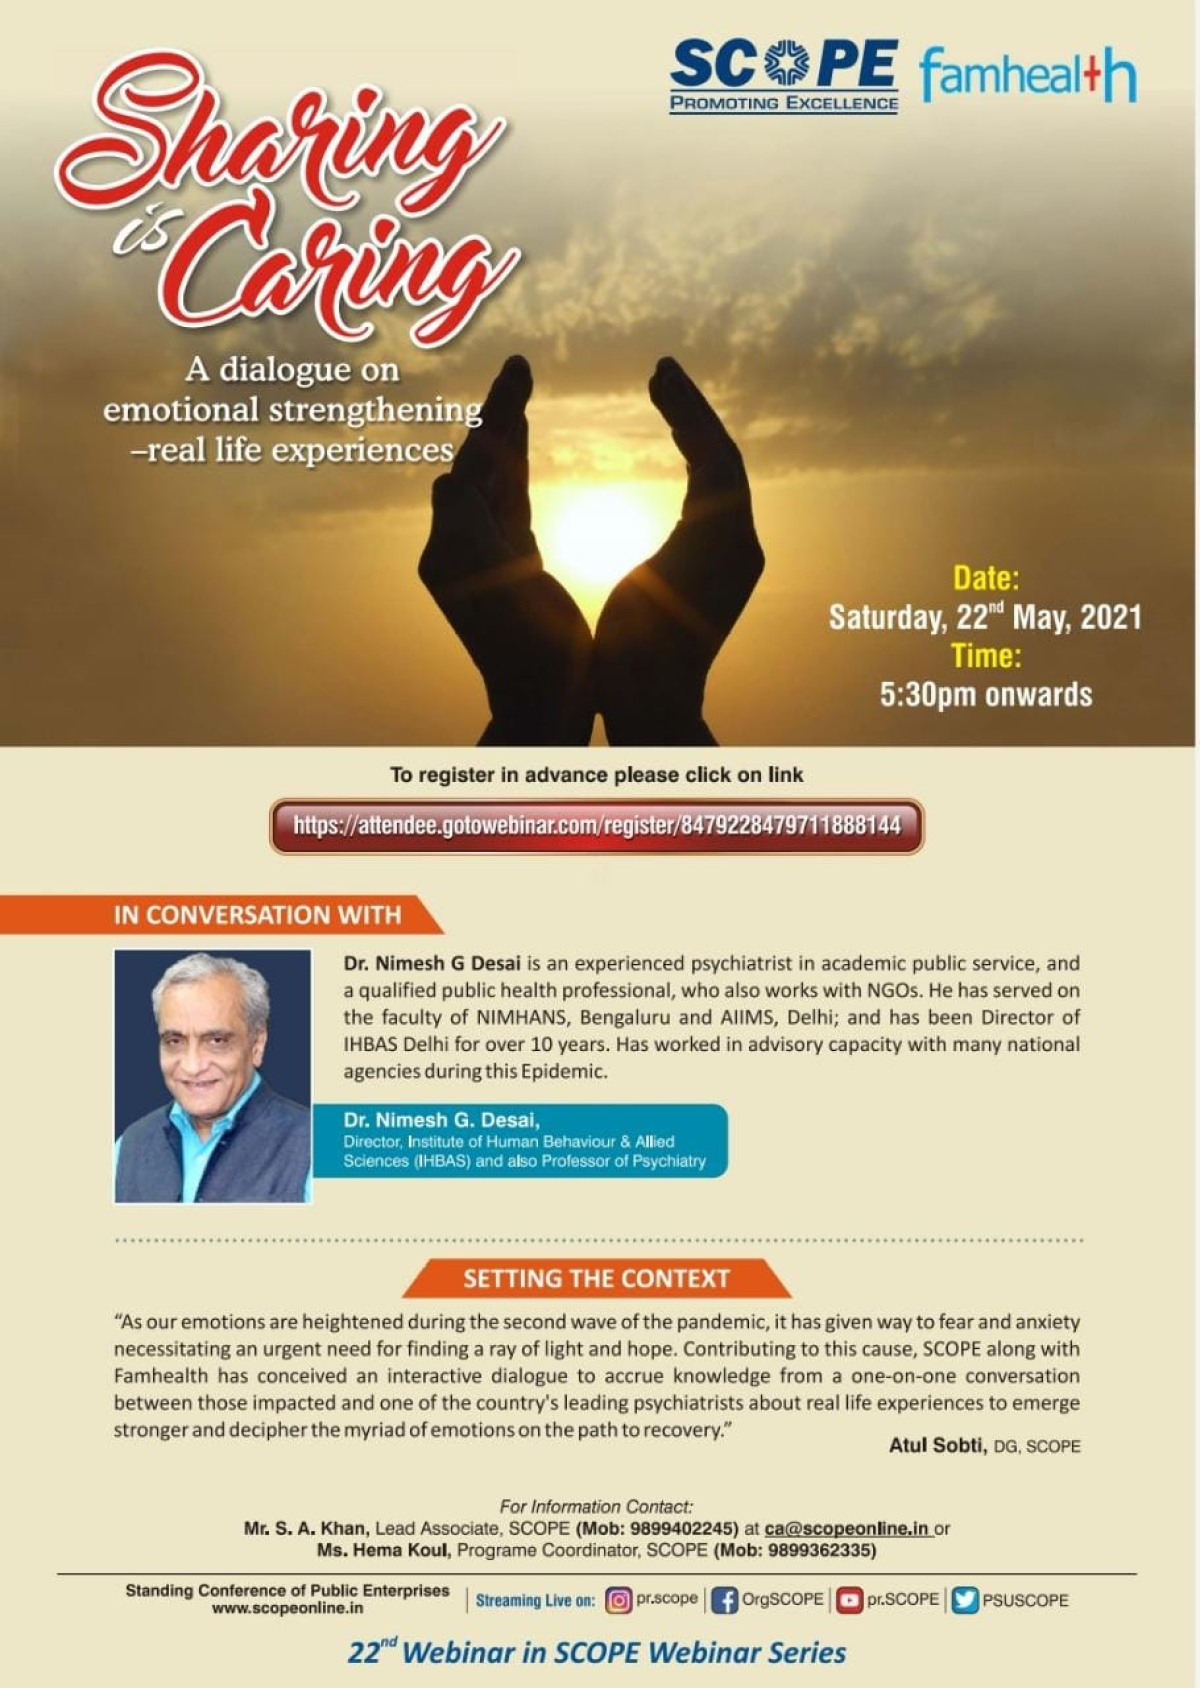 SCOPE to host Interaction on Emotional Strengthening during COVID's Second Wave